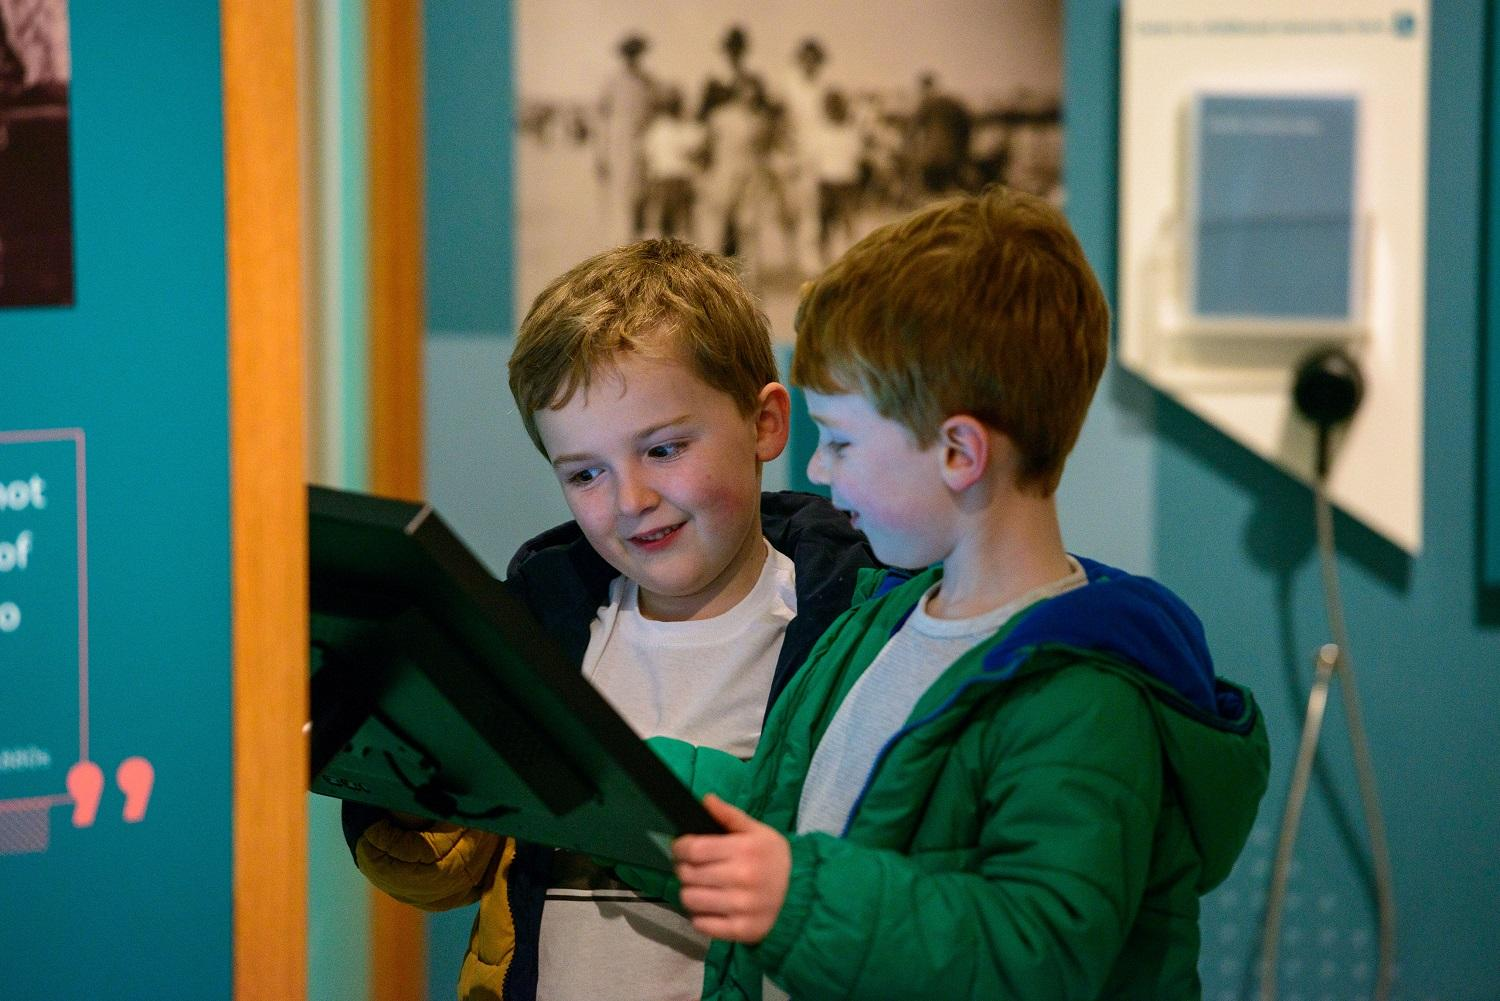 Two children enjoy the exhibition. Photo by Ian Georgeson